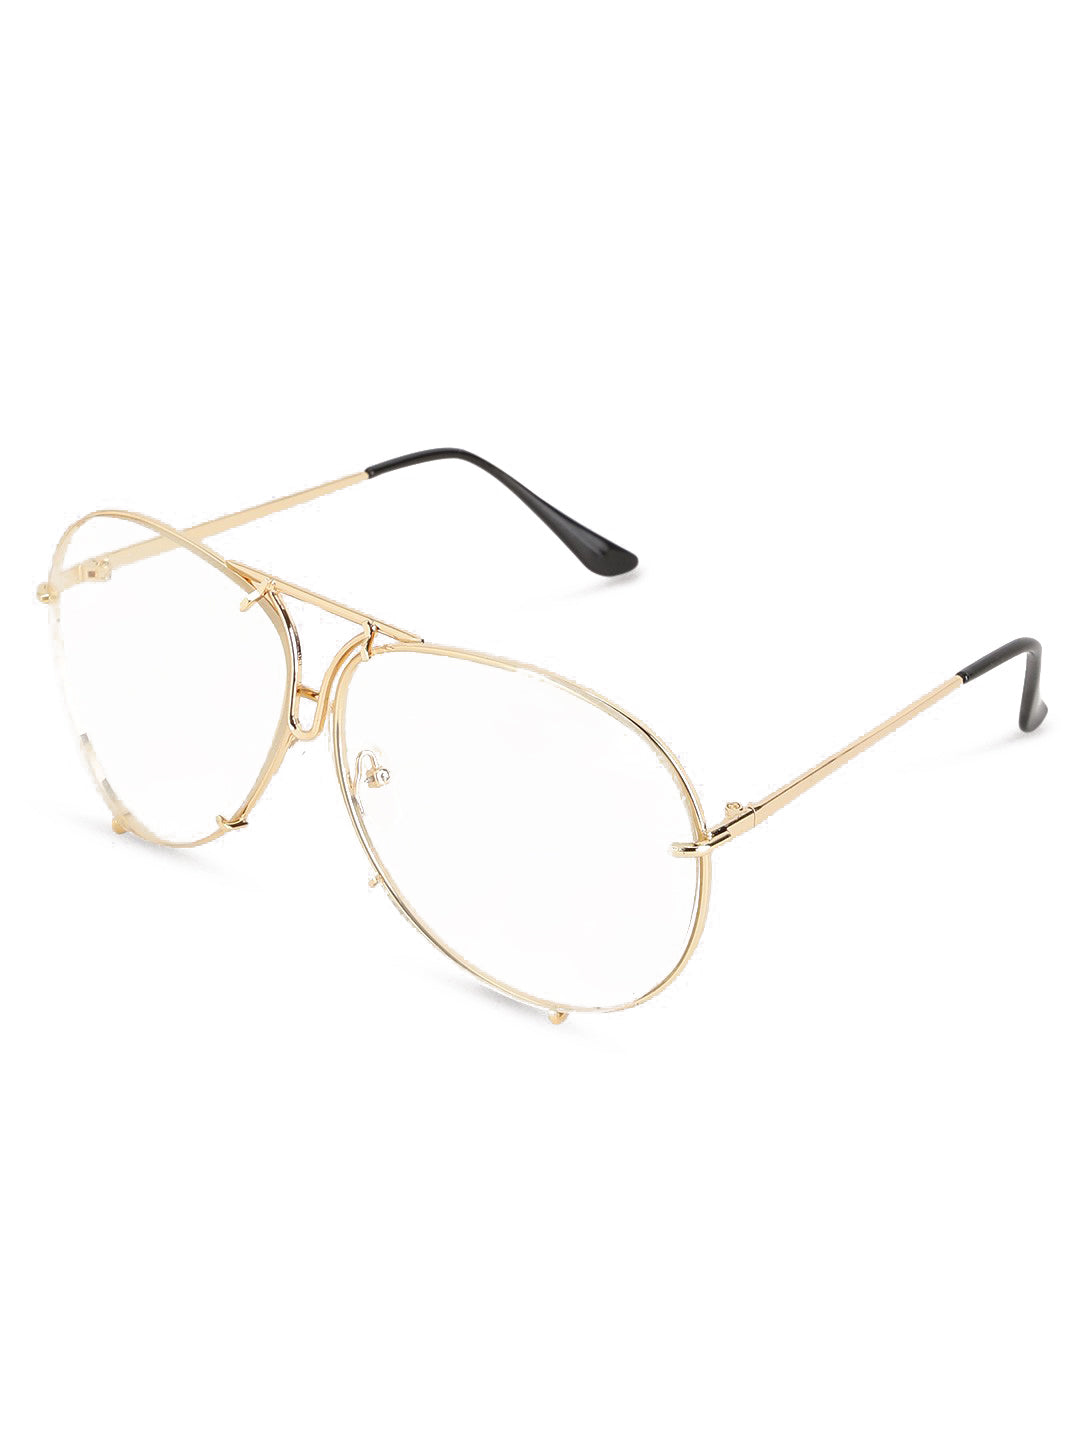 7c58d80a6b Oversized Round Gold Clear Glasses. Tap to expand